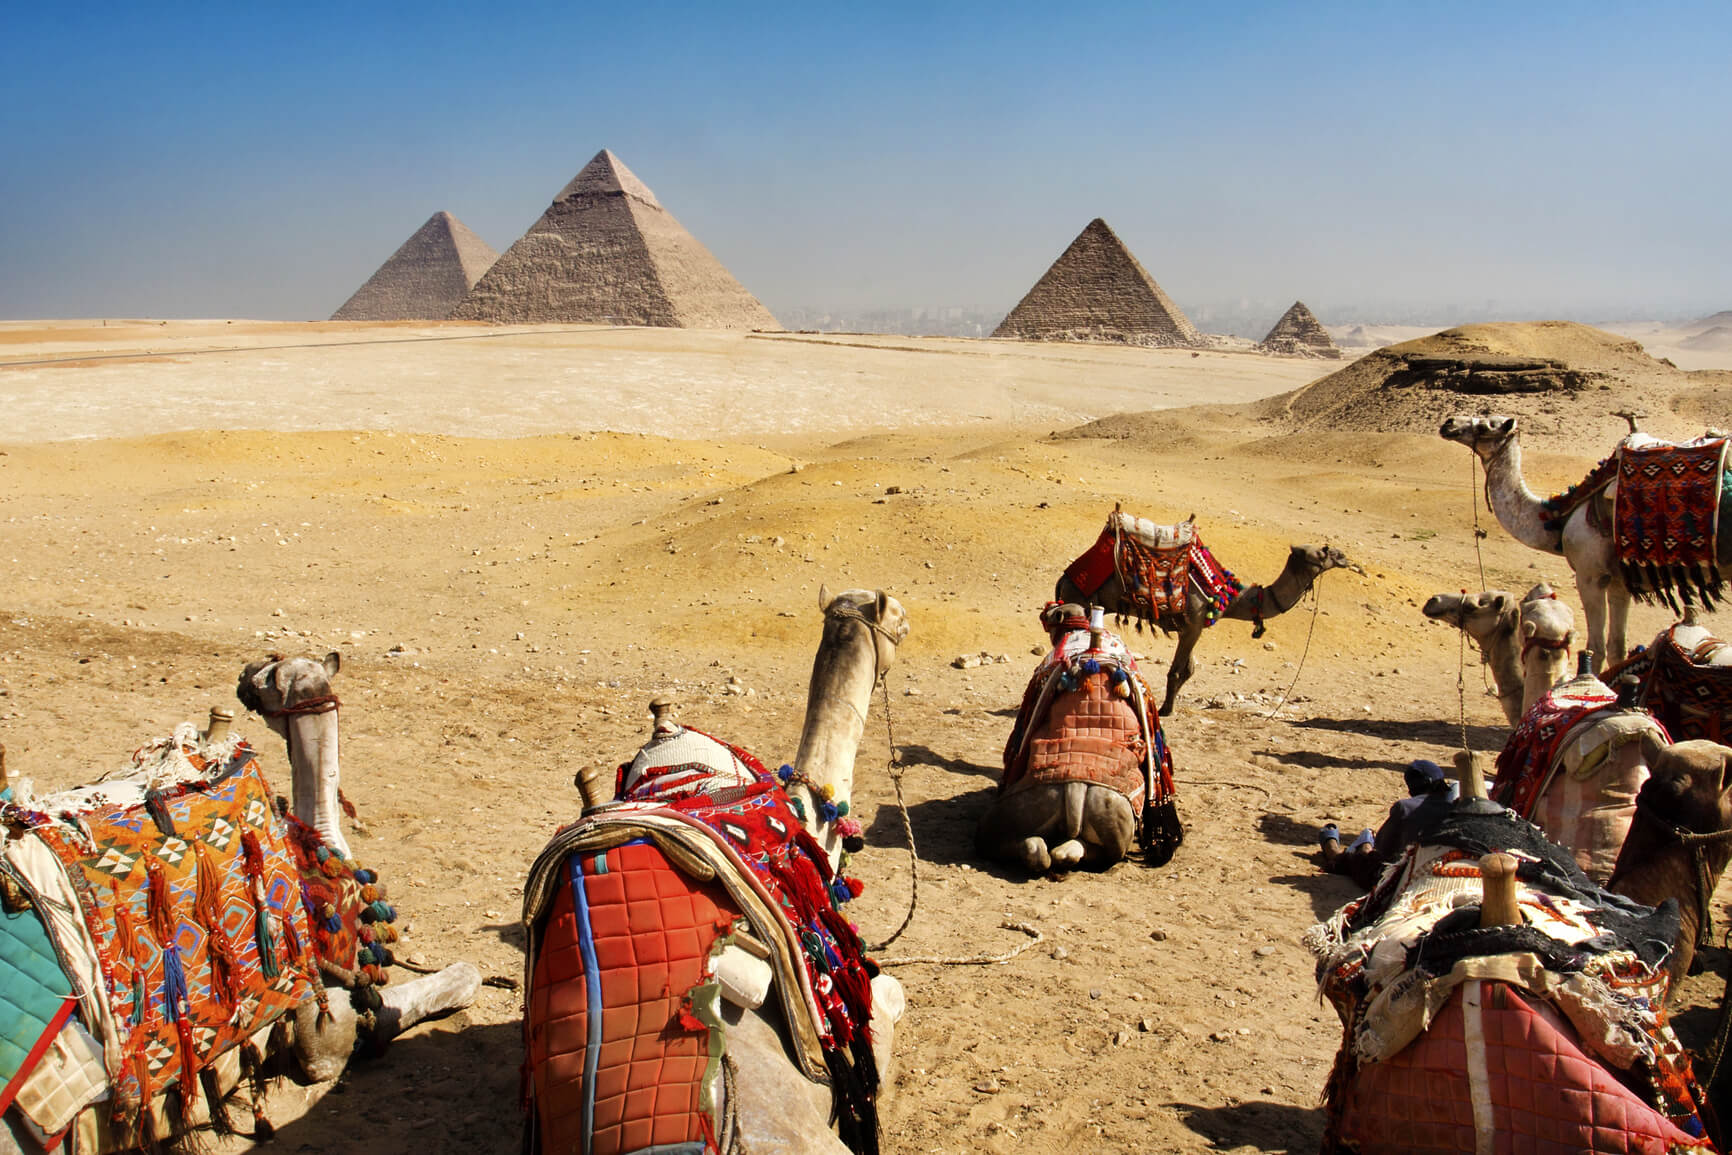 HOT!! New York to Cairo, Egypt for only $322 roundtrip